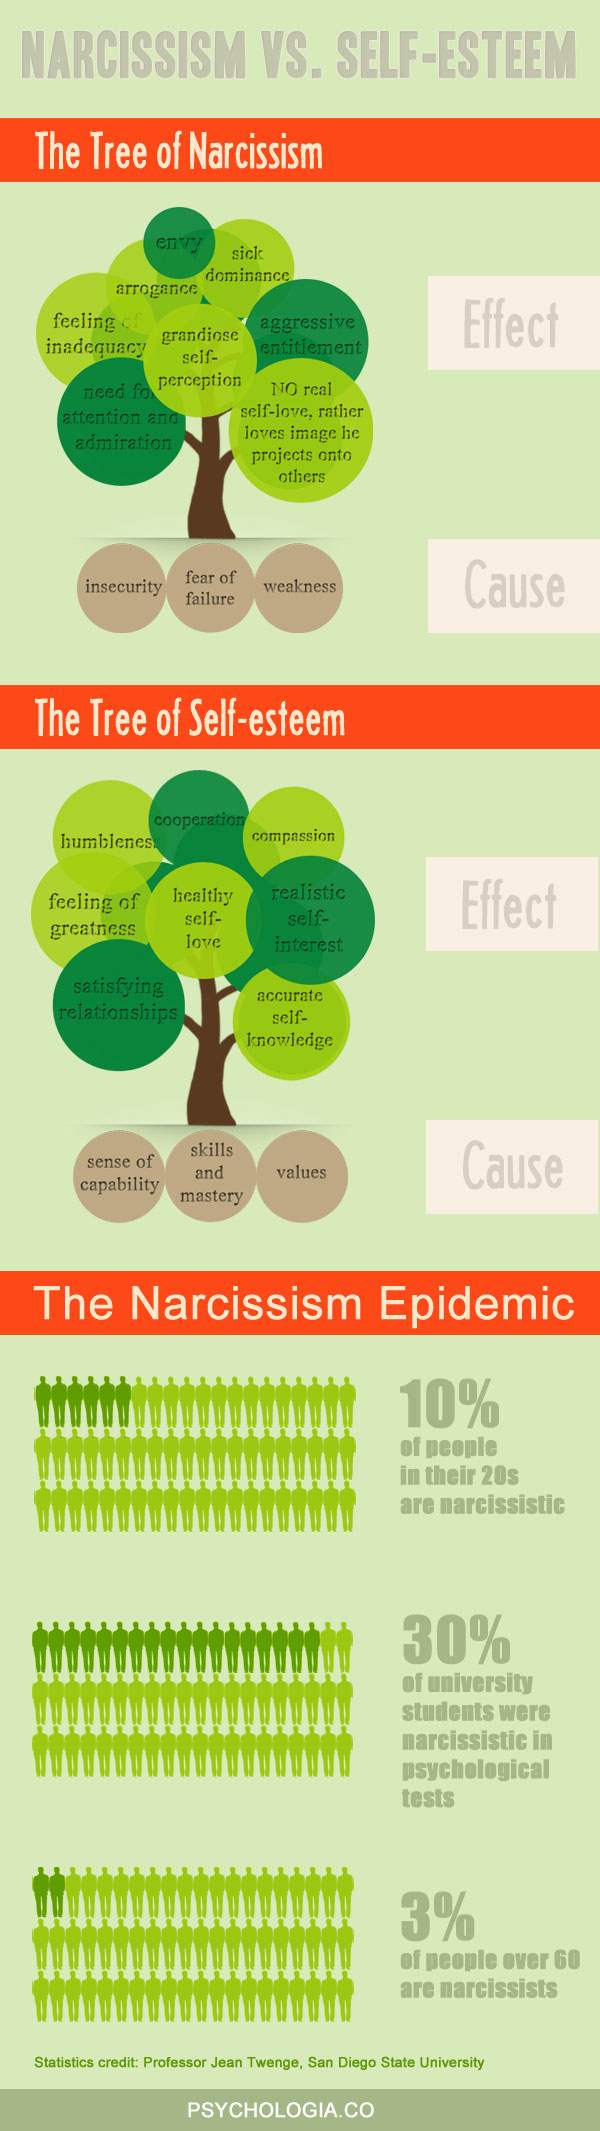 Infographic: Narcissism and Self-esteem by Psychologia.co